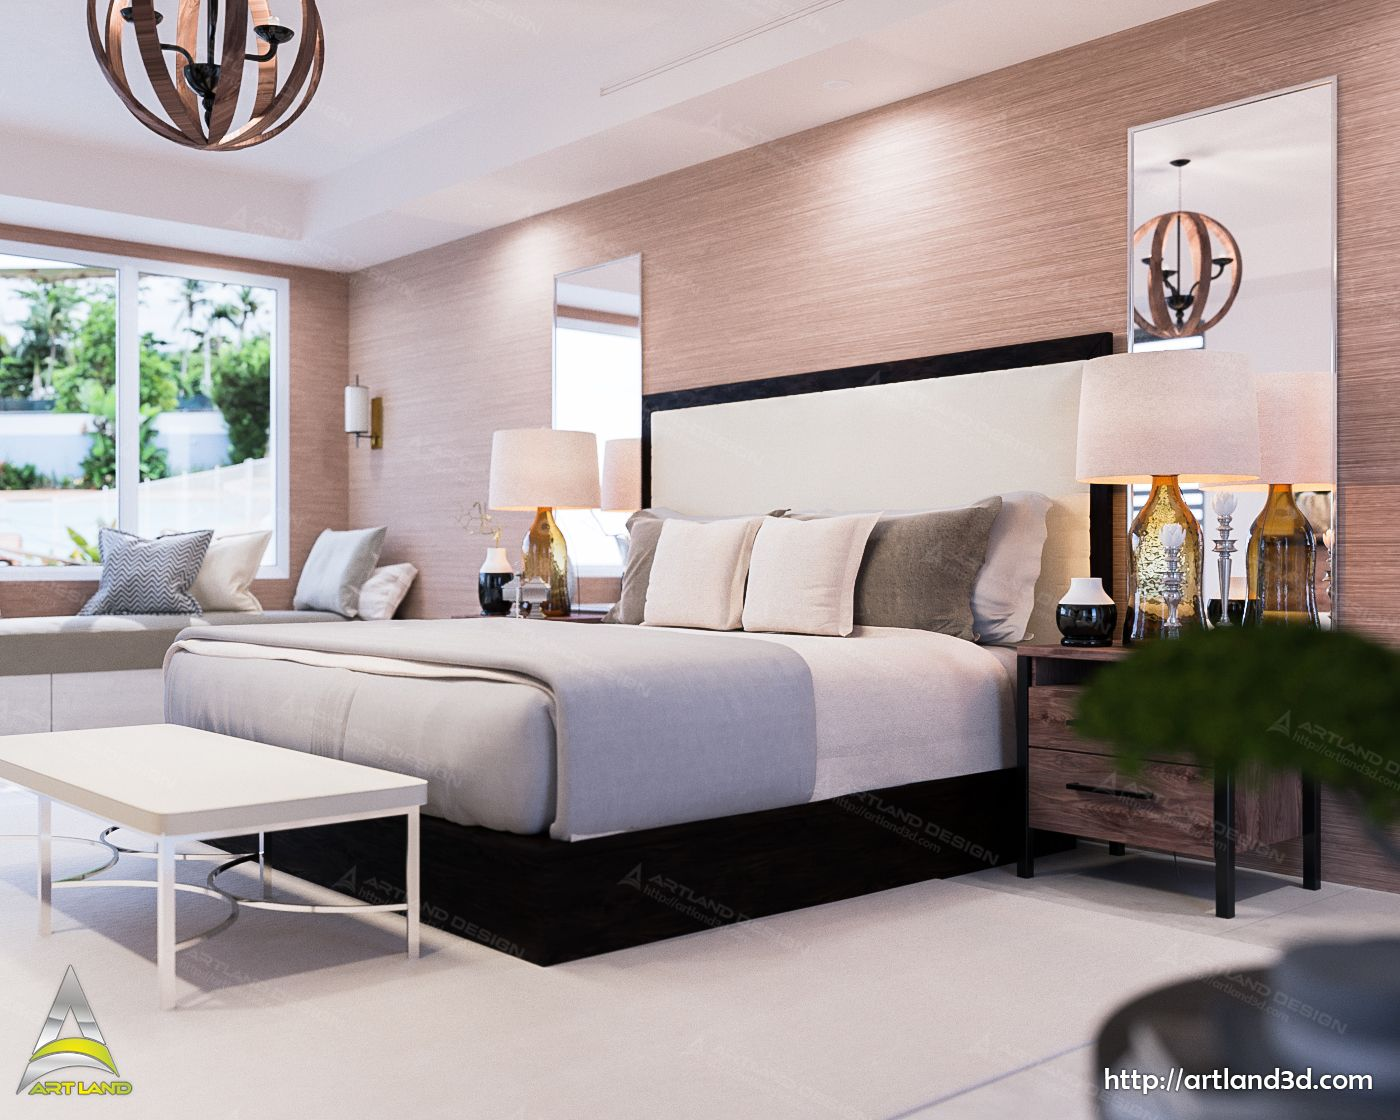 Modern Bedroom Interior Design 3d Realistic Visualization And